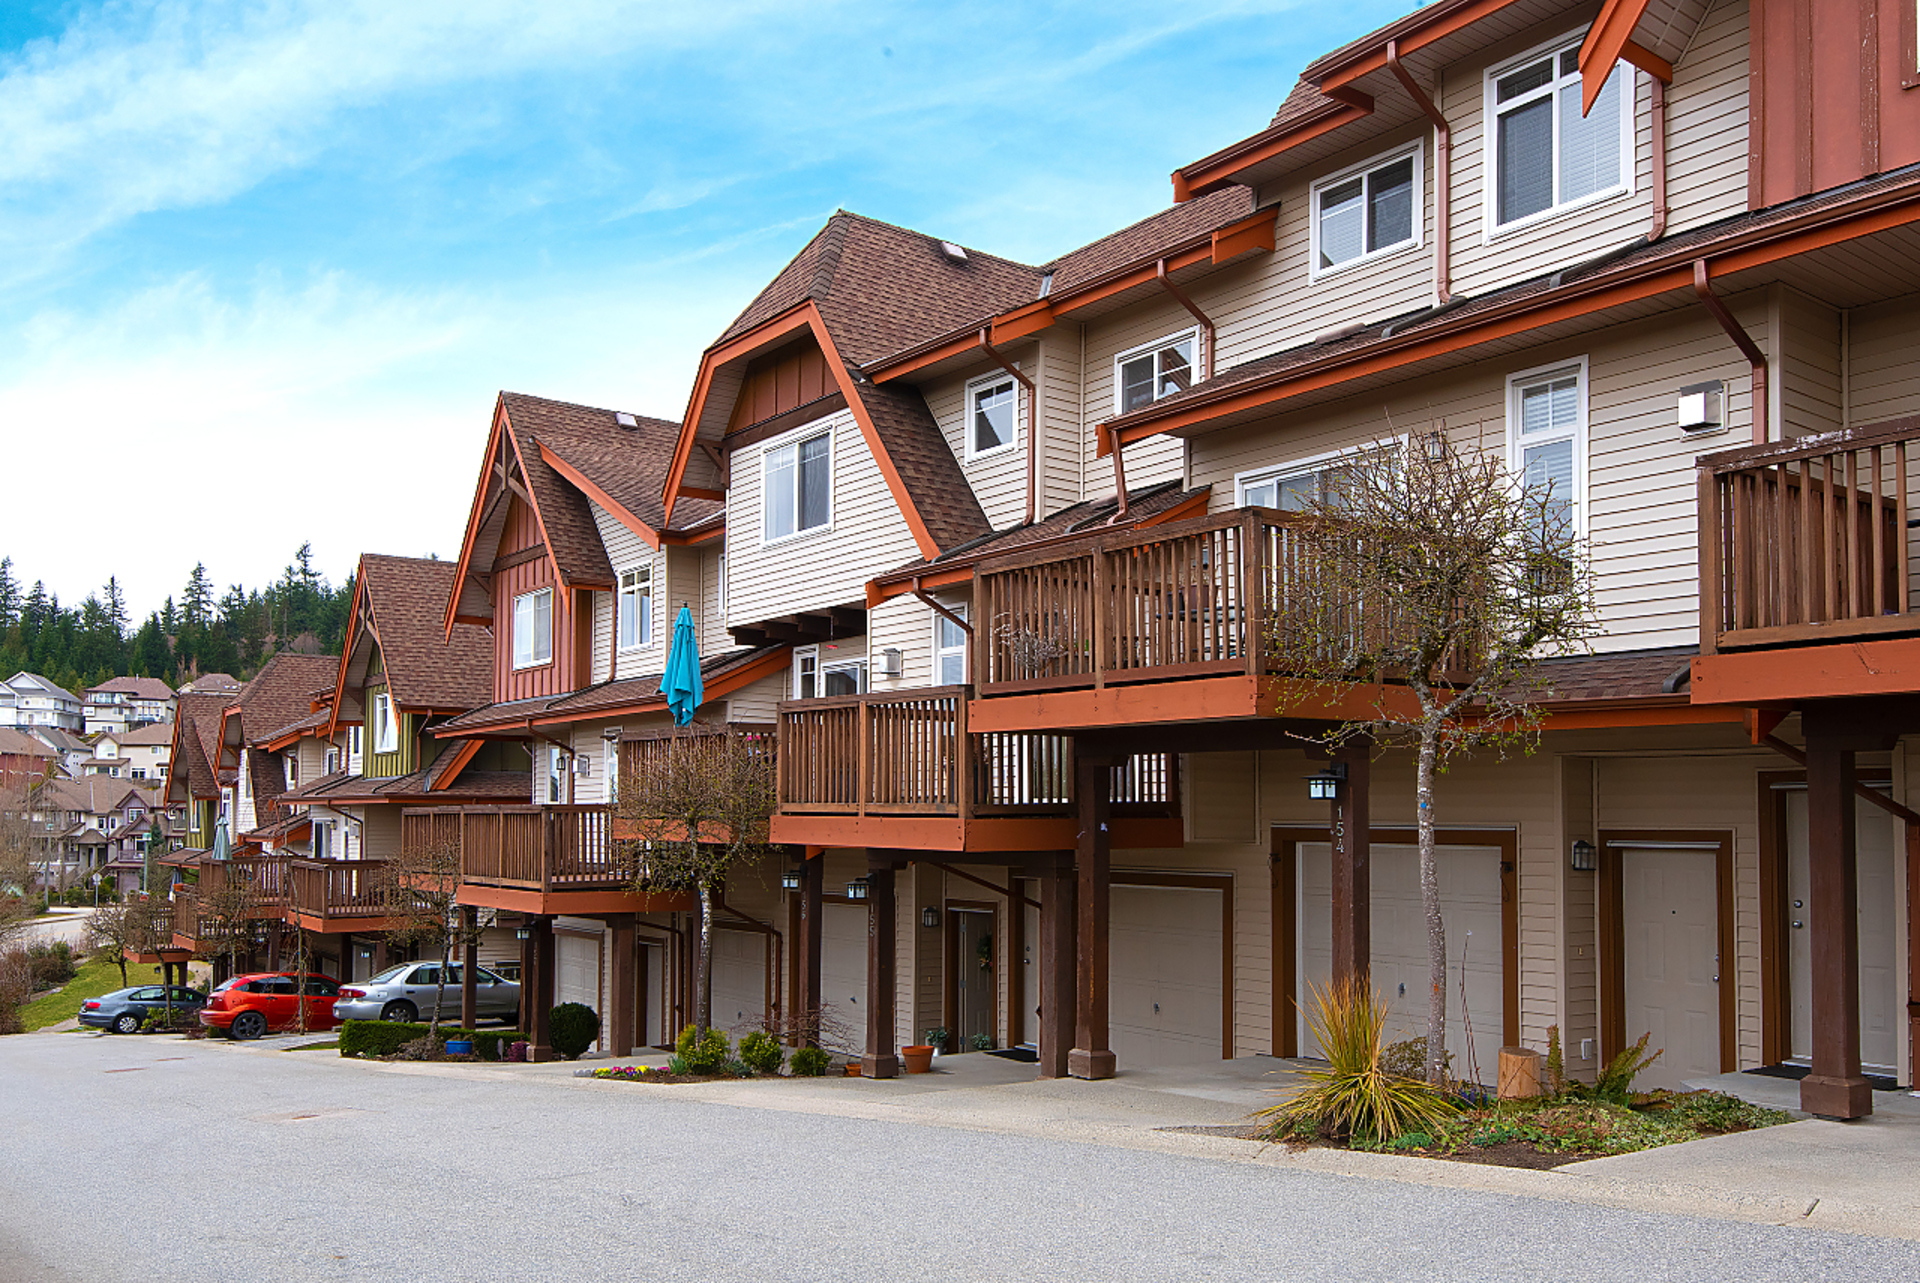 000 at 156 - 2000 Panorama Drive, Heritage Woods PM, Port Moody